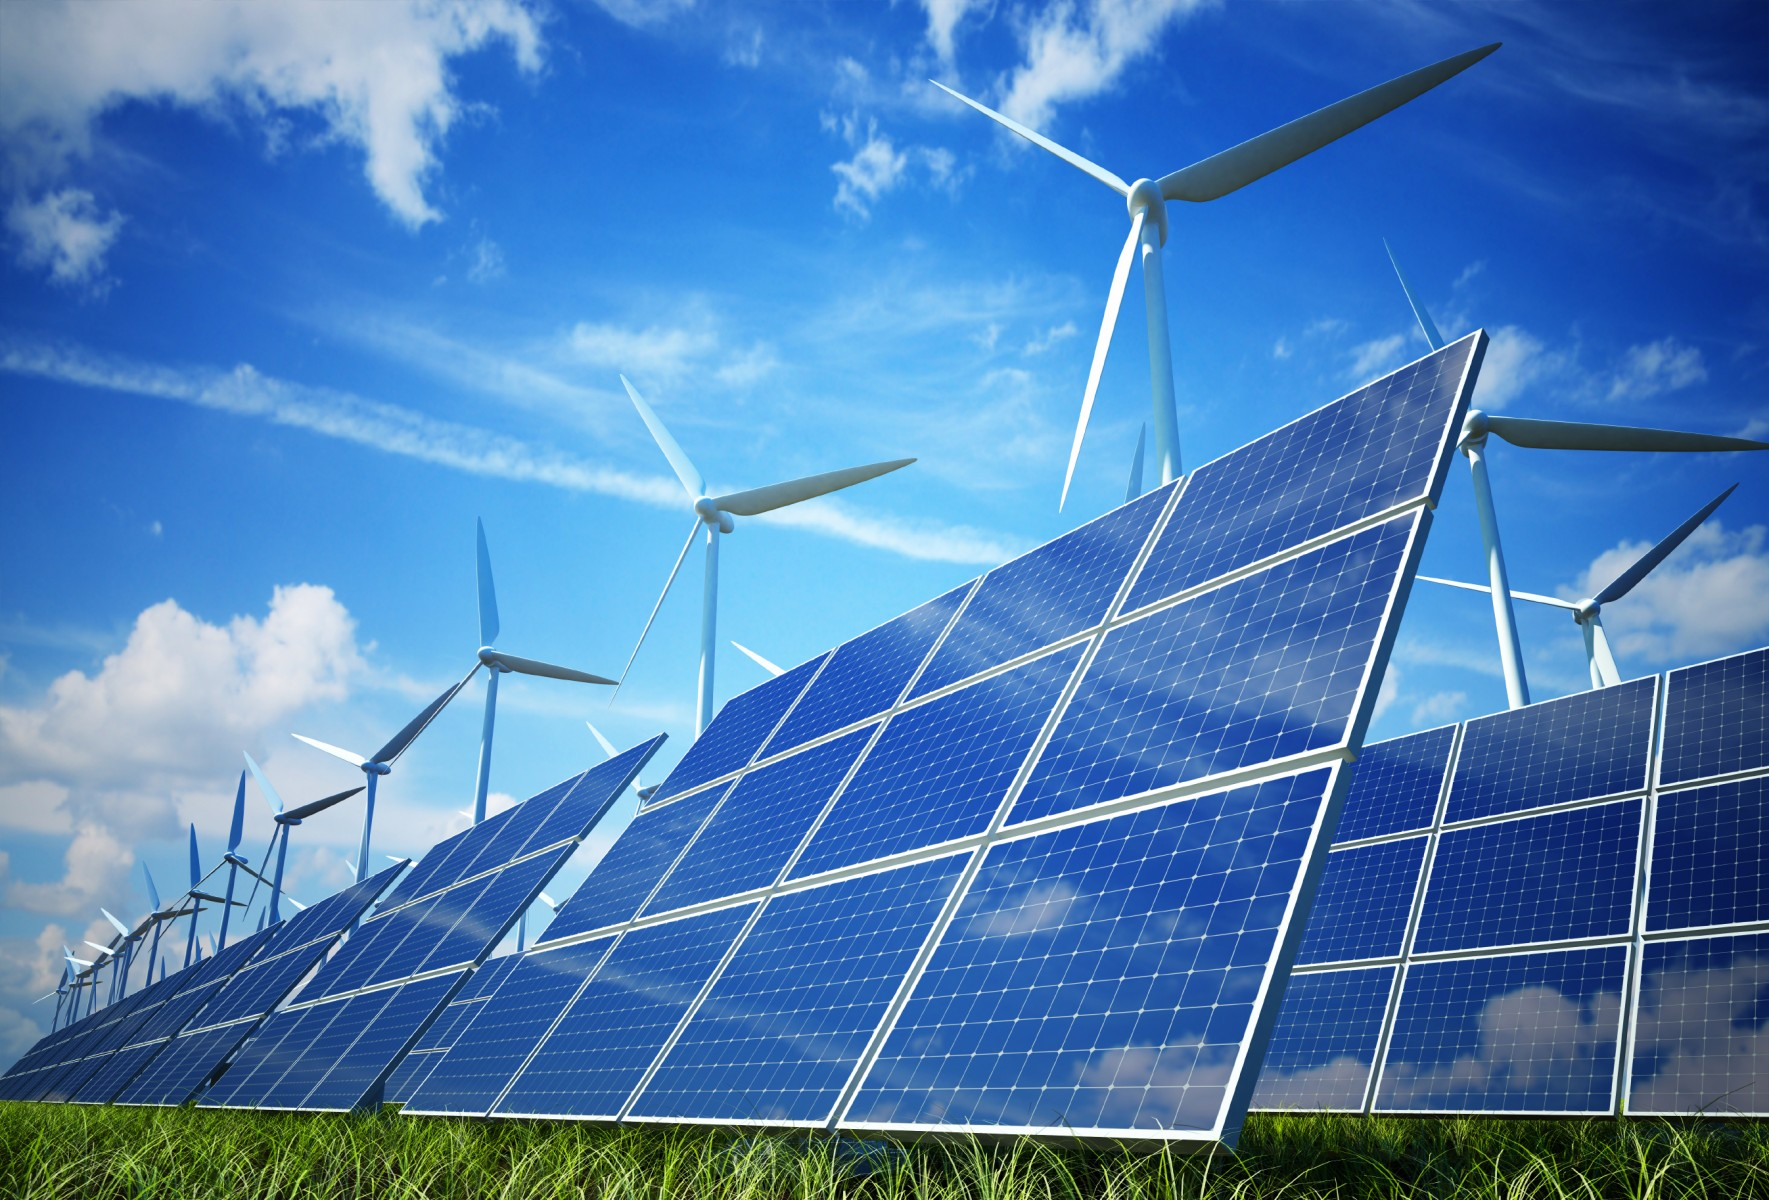 The EU's Main Source of electricity Now comes from Renewable Energy